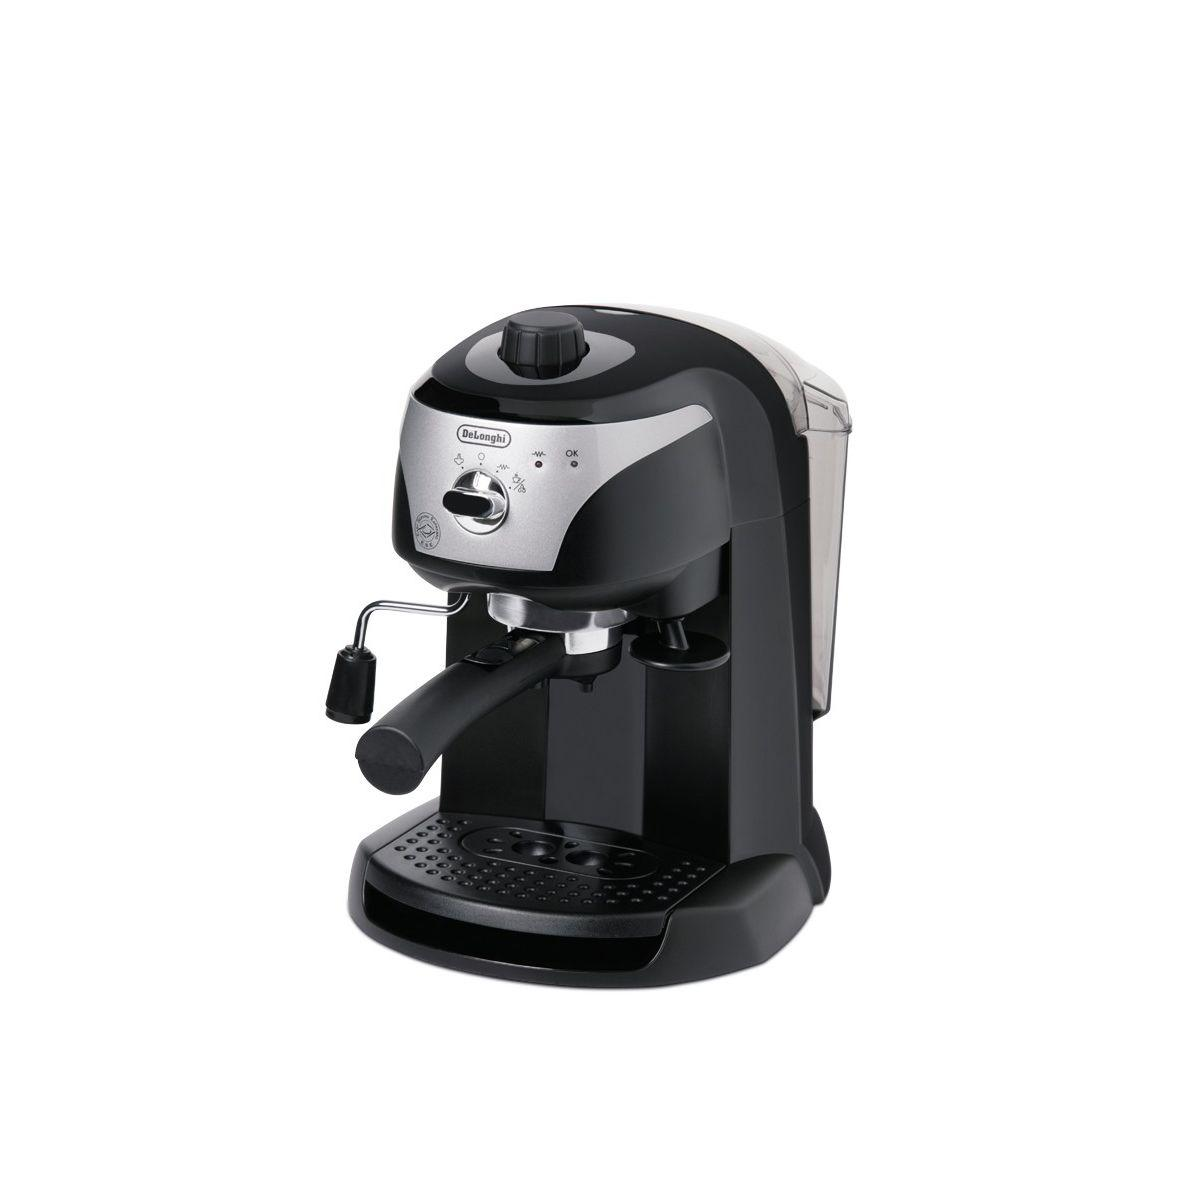 Machine ? expresso delonghi ec 221.b